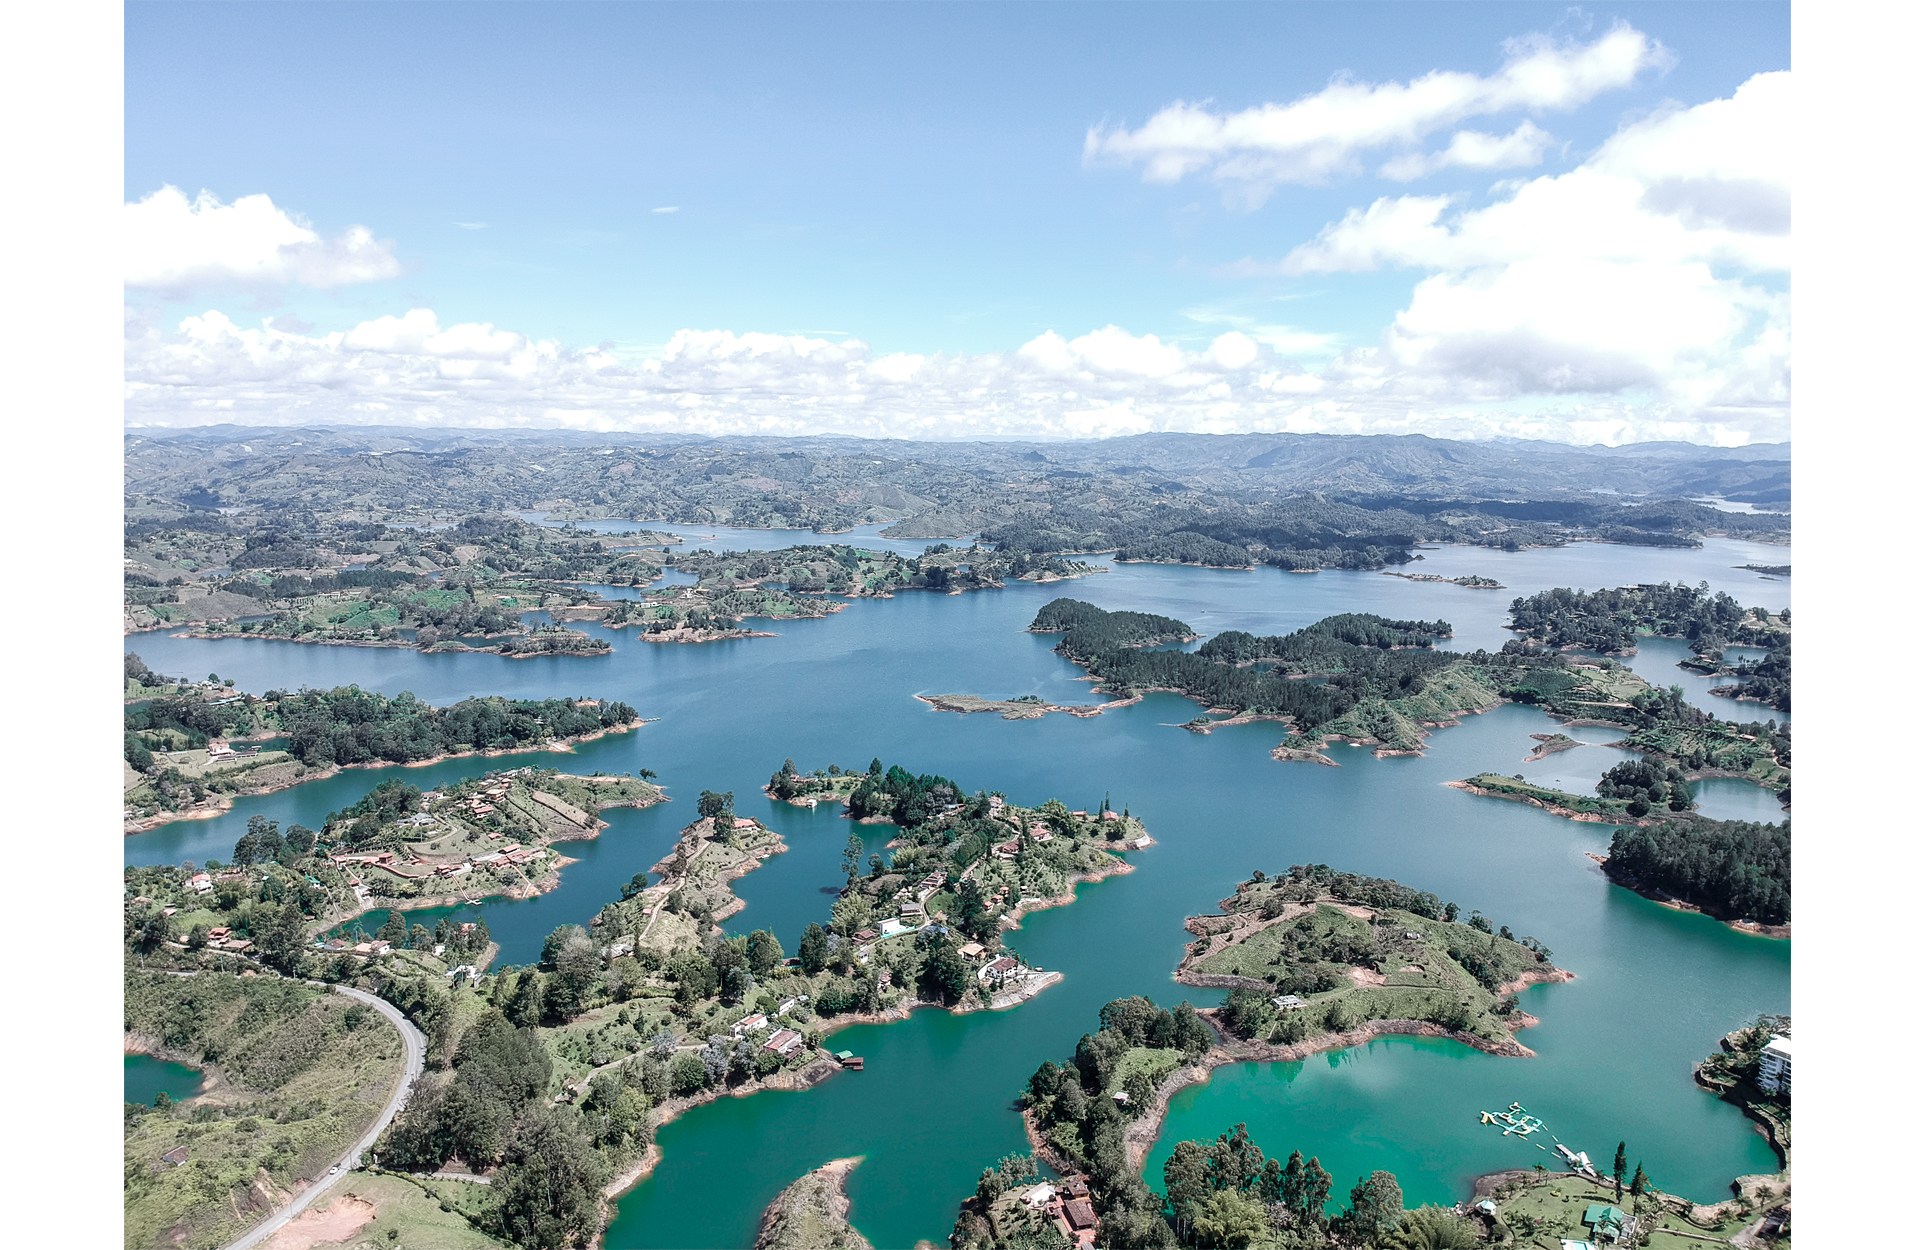 View of the blue water of the guatape lake